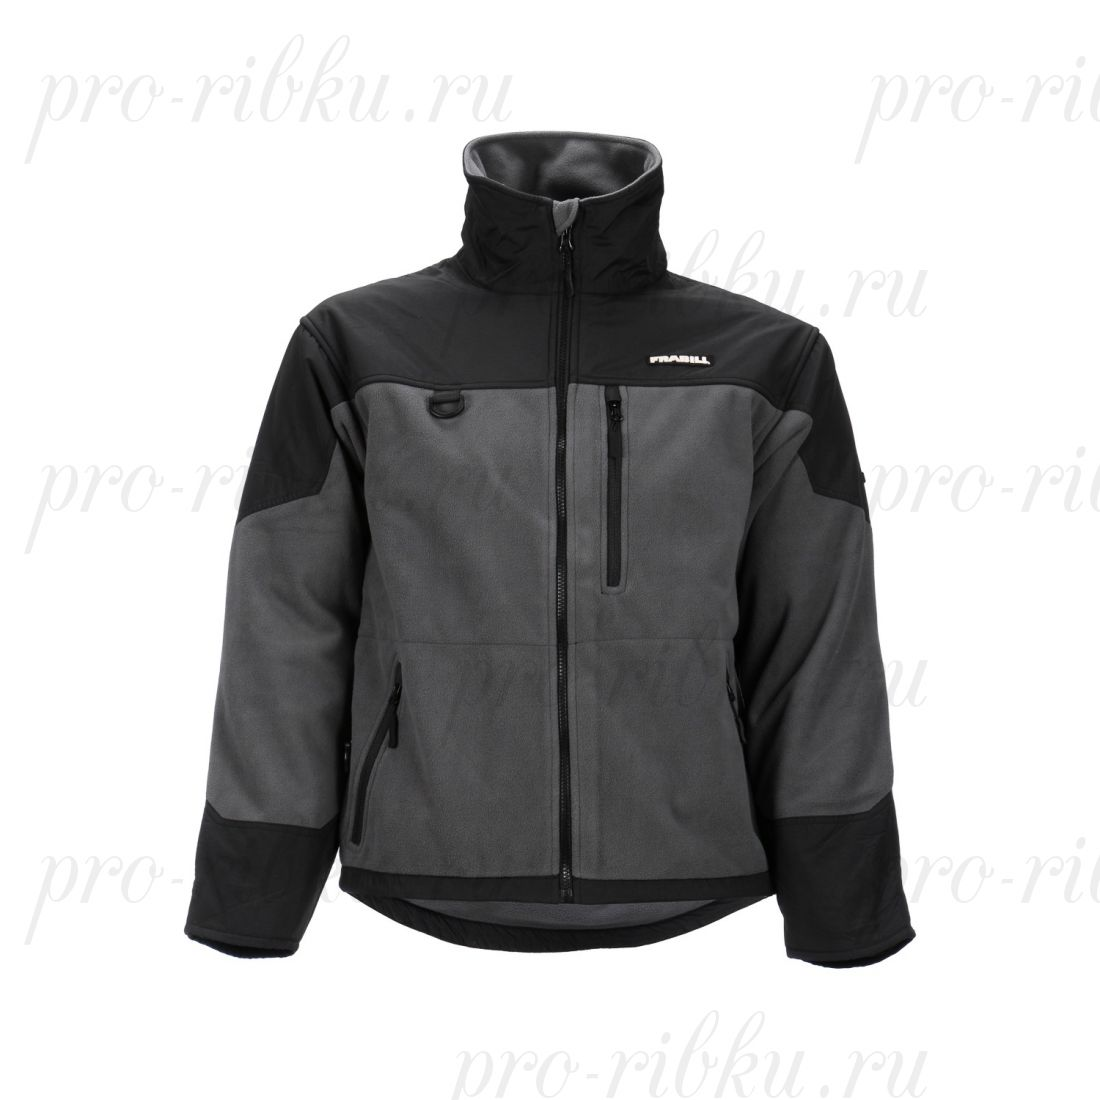 Куртка флисовая Frabill FXE WINDPROOF FLEECE Jacket размер XL